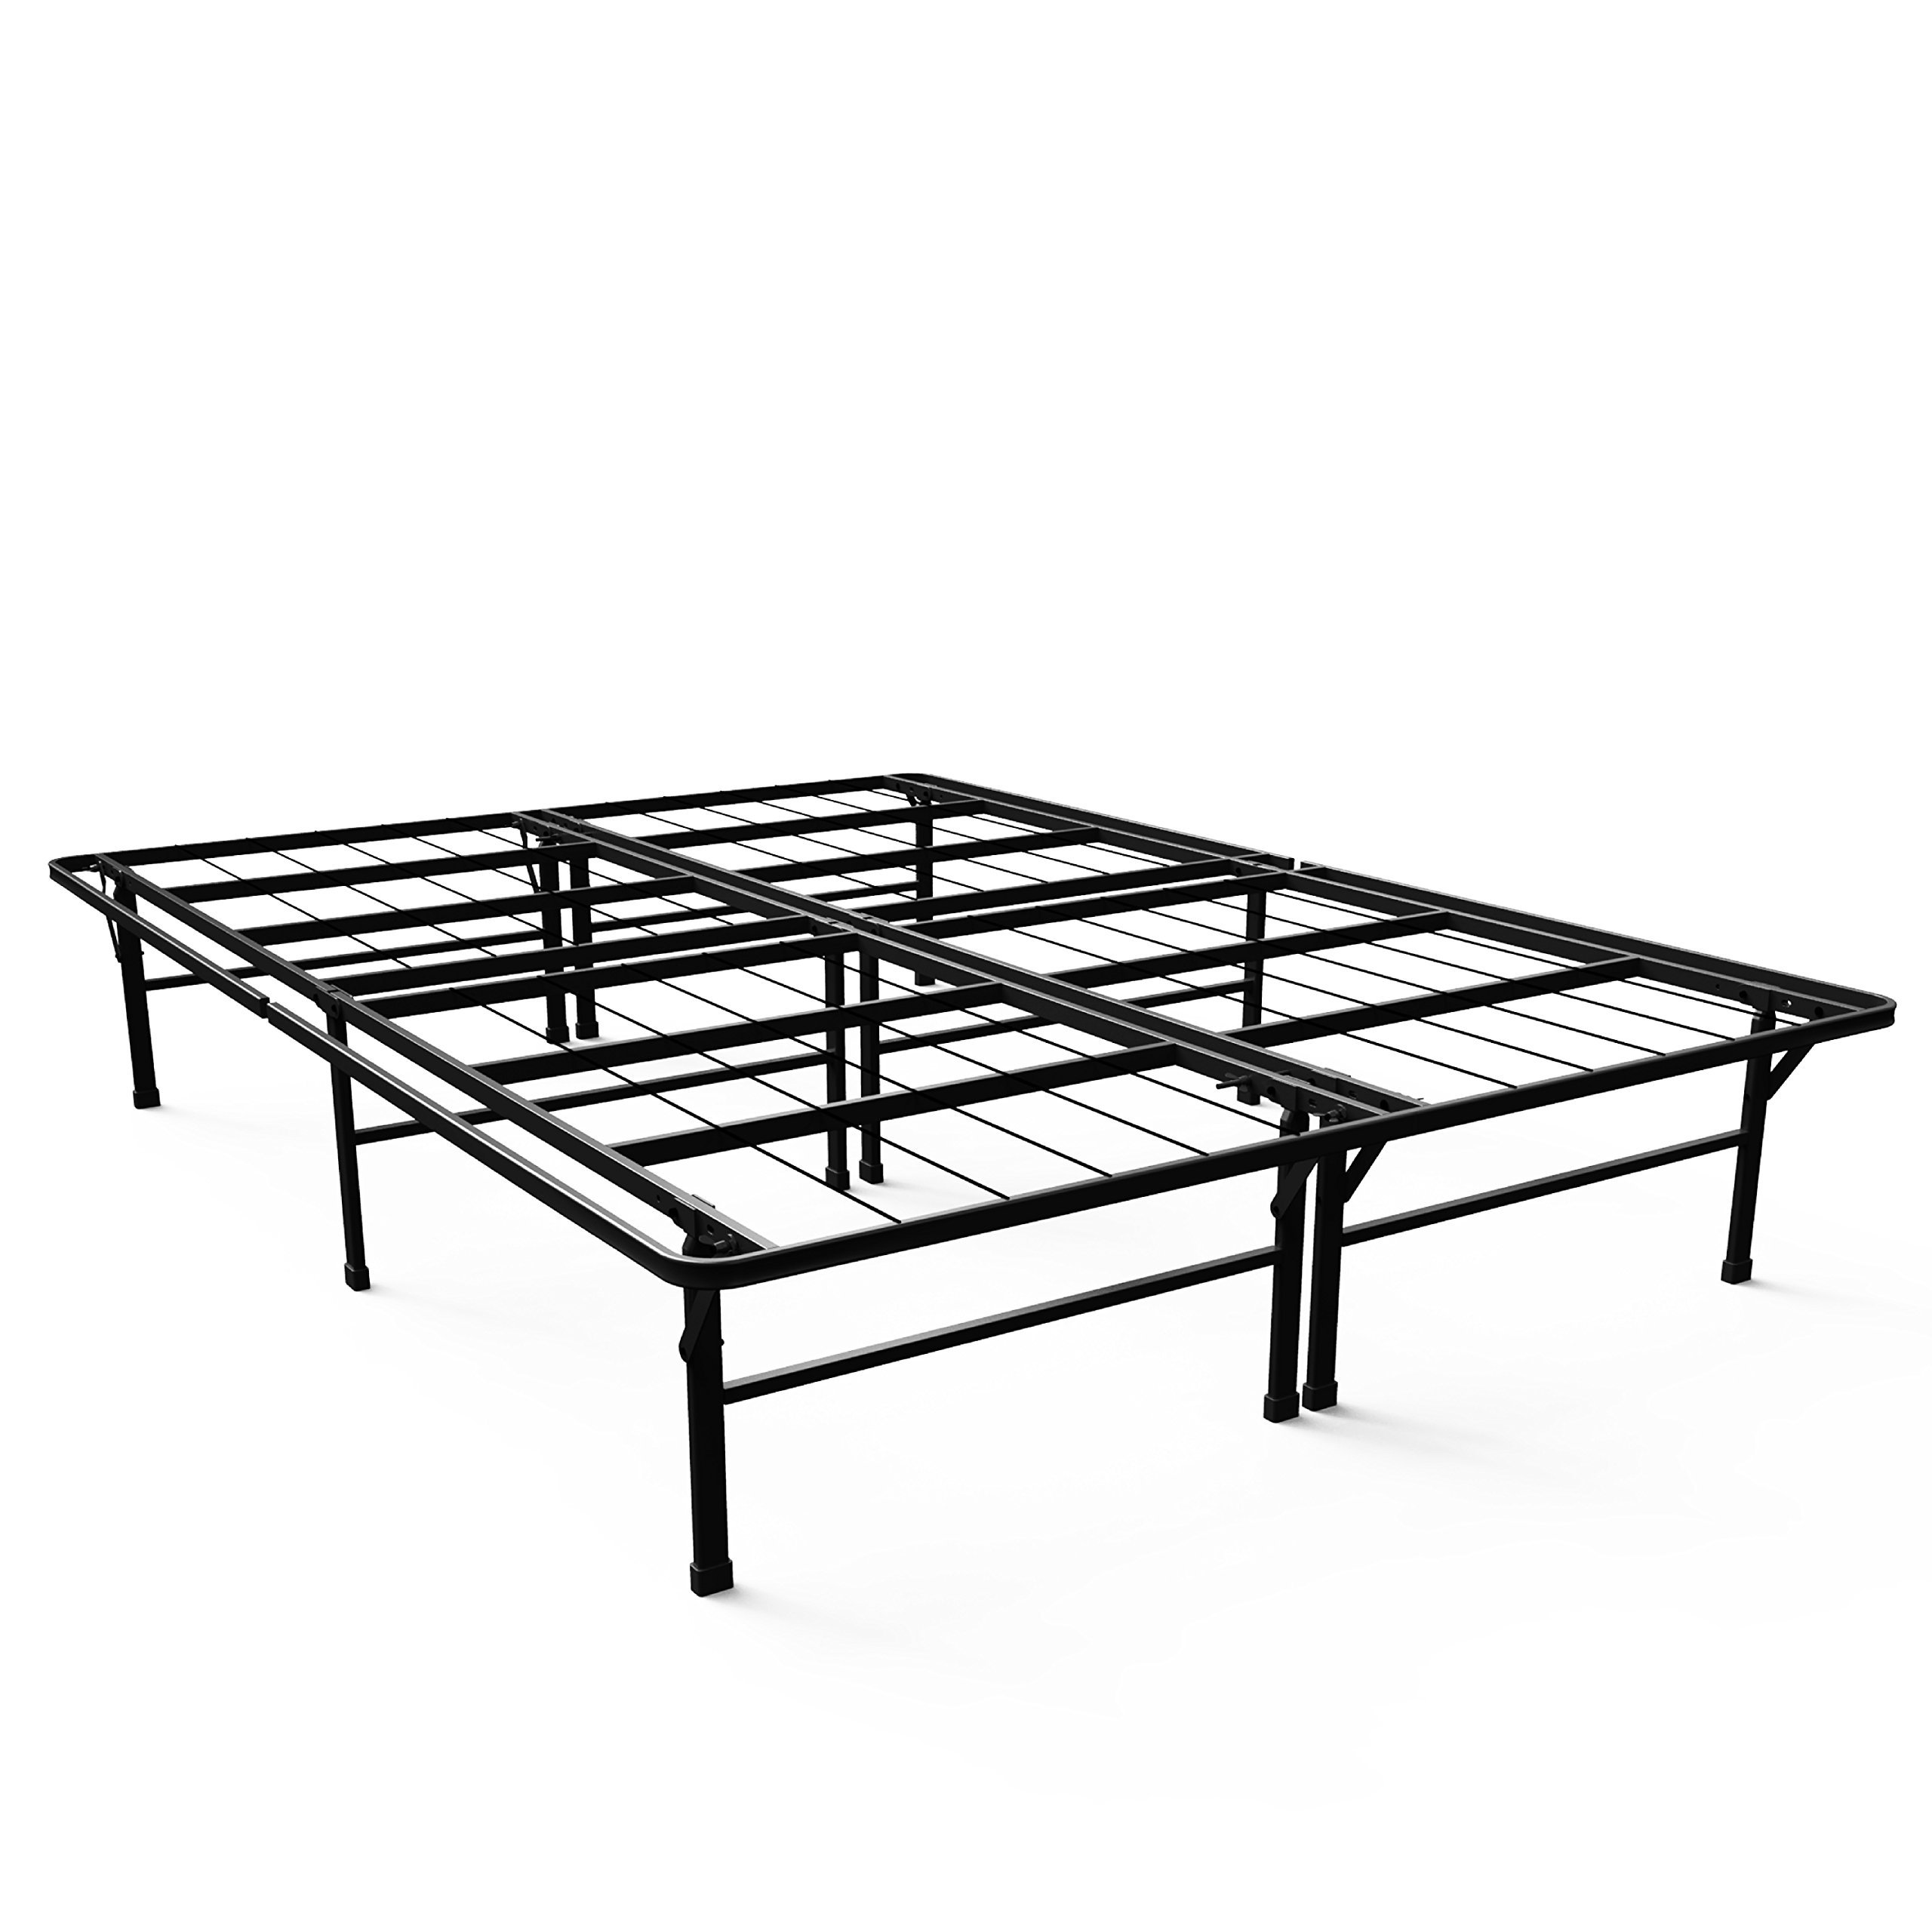 Zinus 14 Inch SmartBase Deluxe, Mattress Foundation, Platform Bed Frame, Box Spring Replacement, Queen